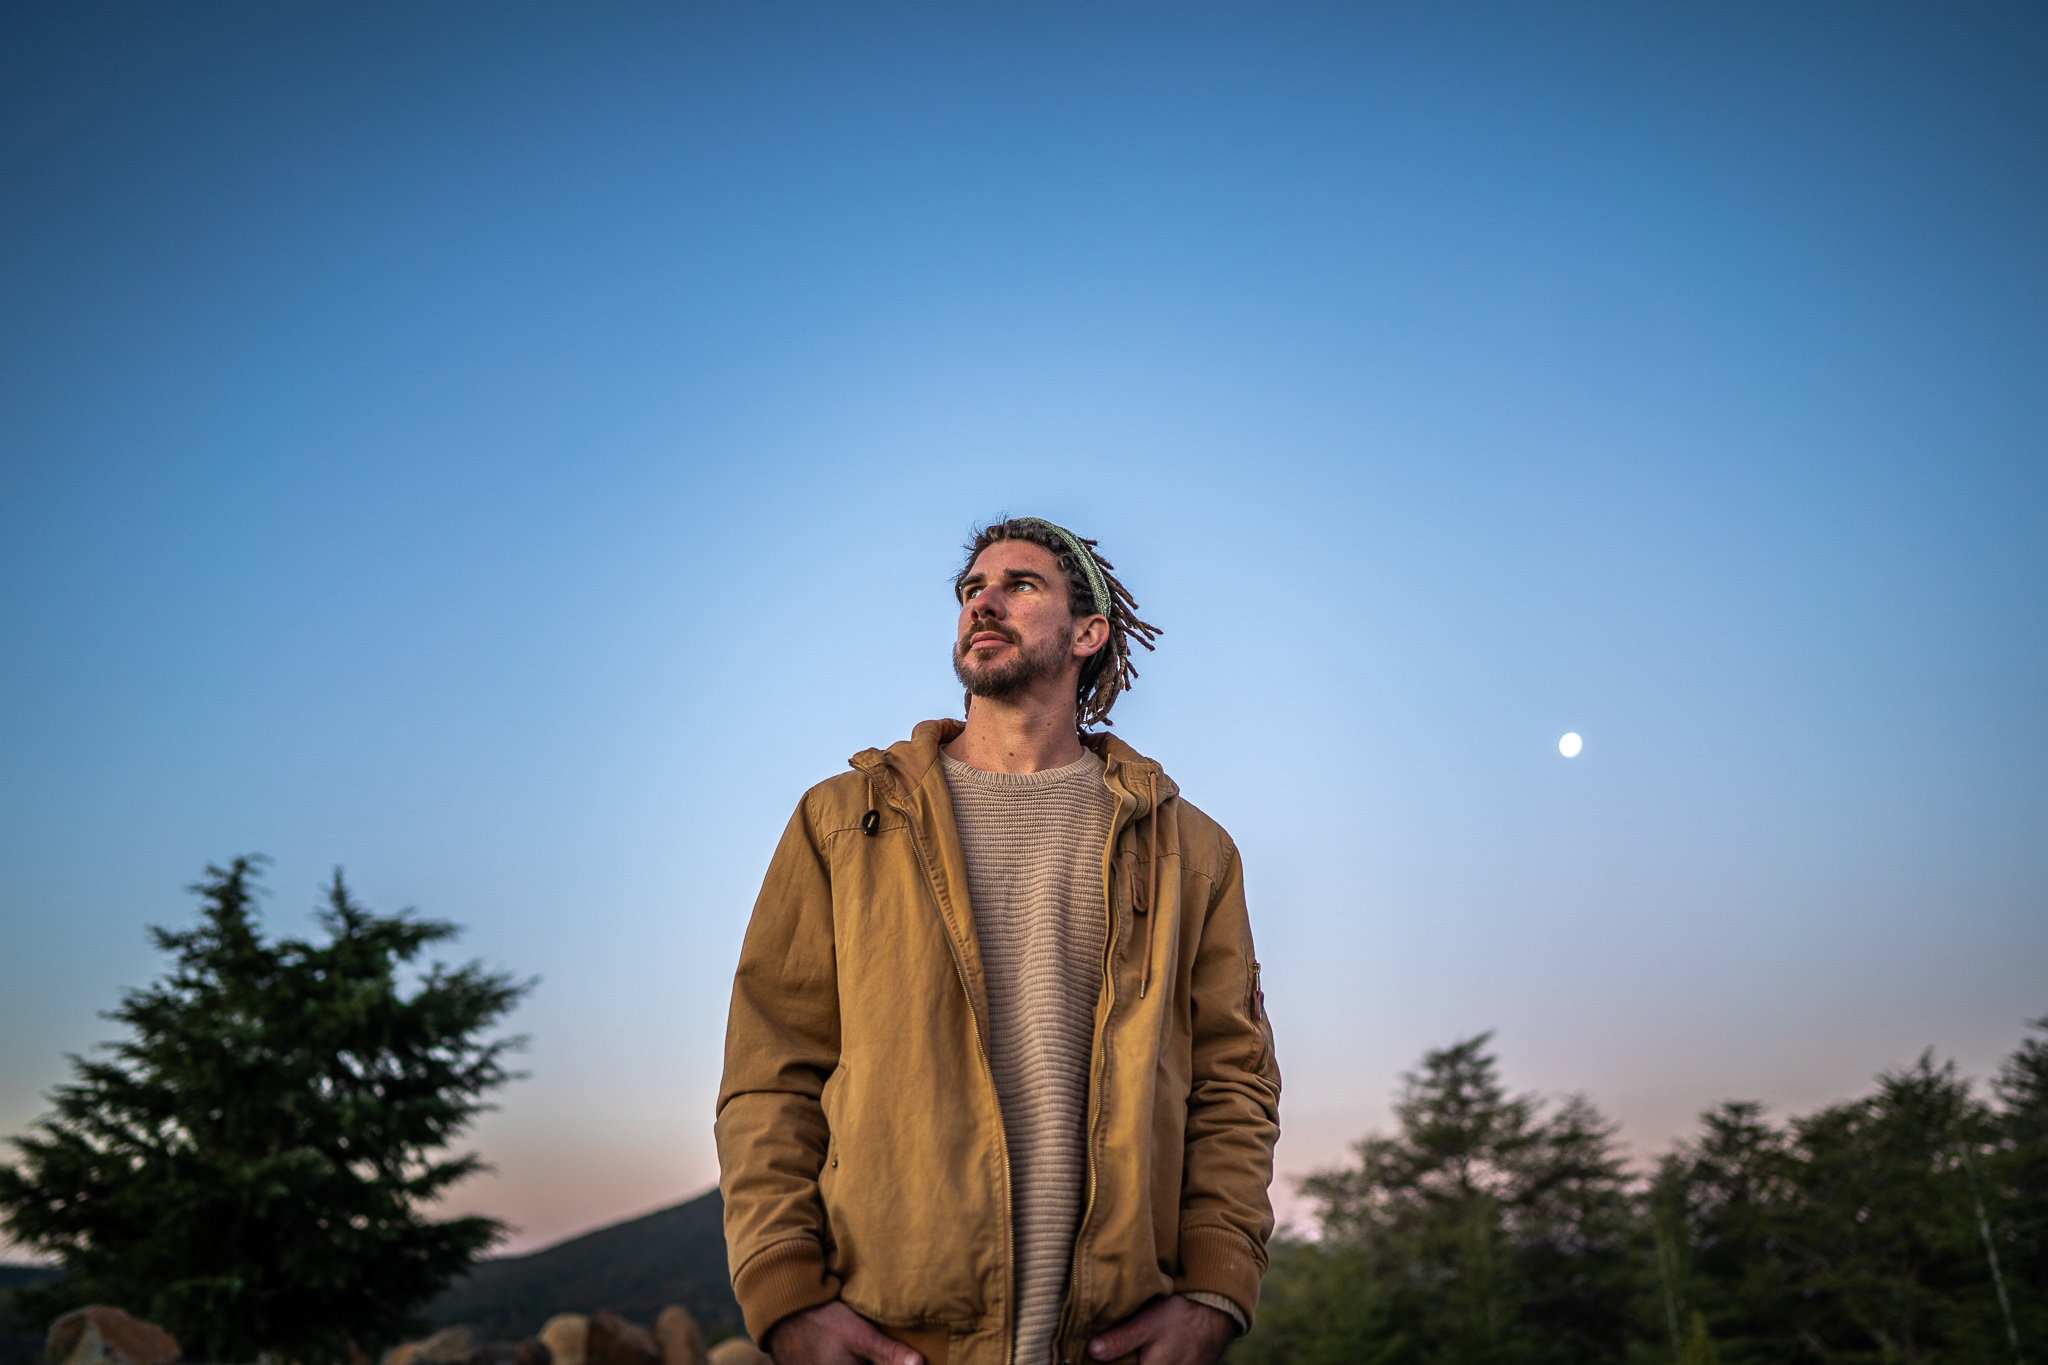 Canberran Balladeer DEAN ABBOTT extols communication and connection with album LETTING GO